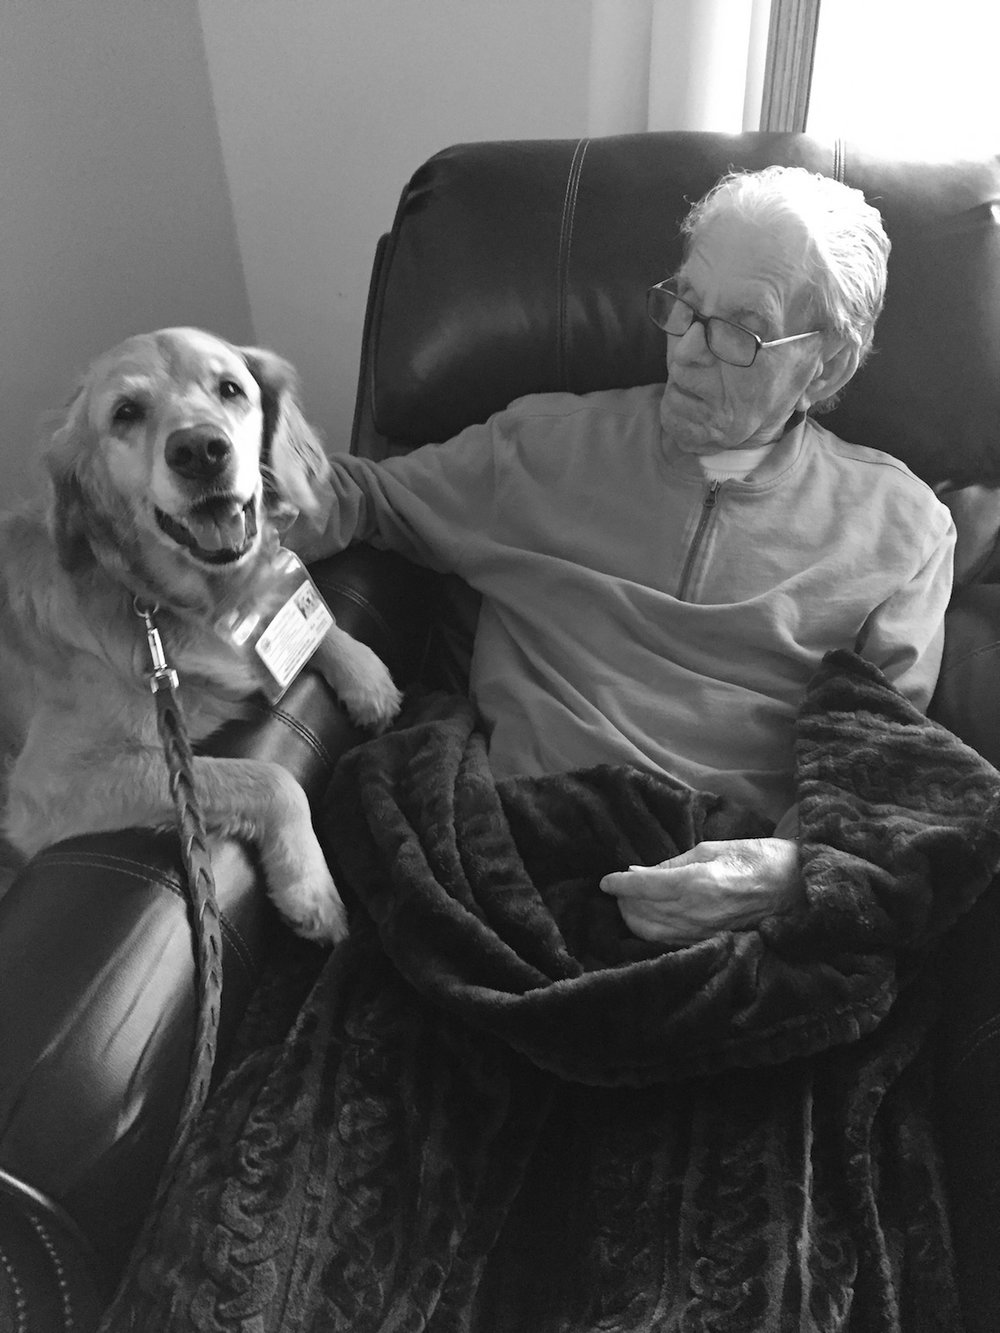 elderly resident and dog on an armchair